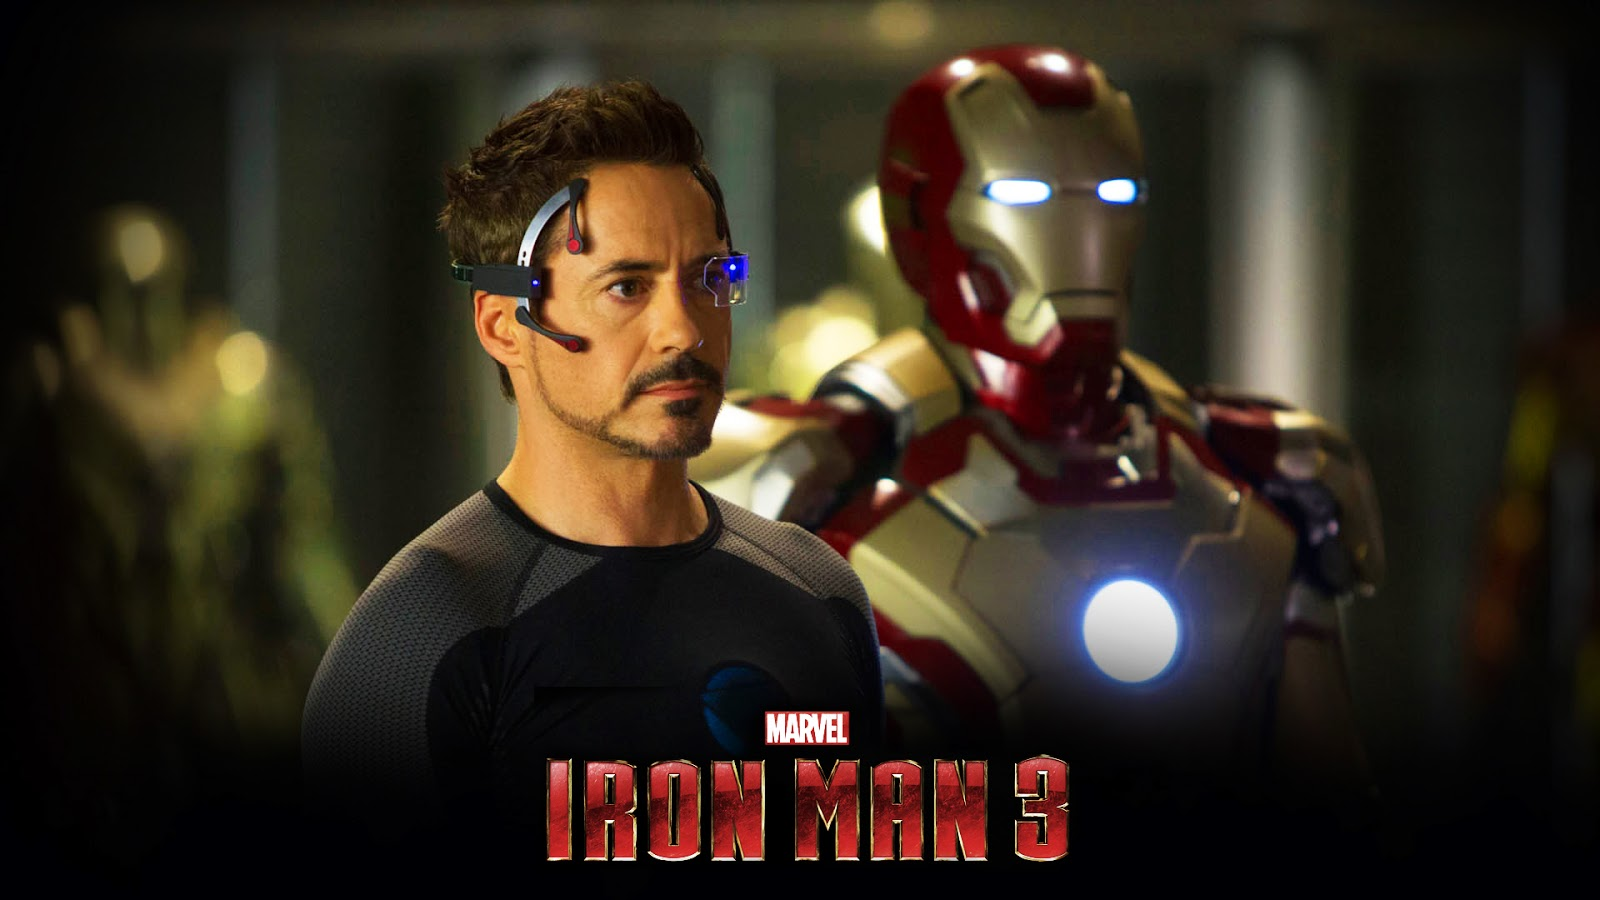 Iron Man 3 7 HQ WallpaperIron Man 3 Iron Man 3 WallpapersIron Man 1600x900